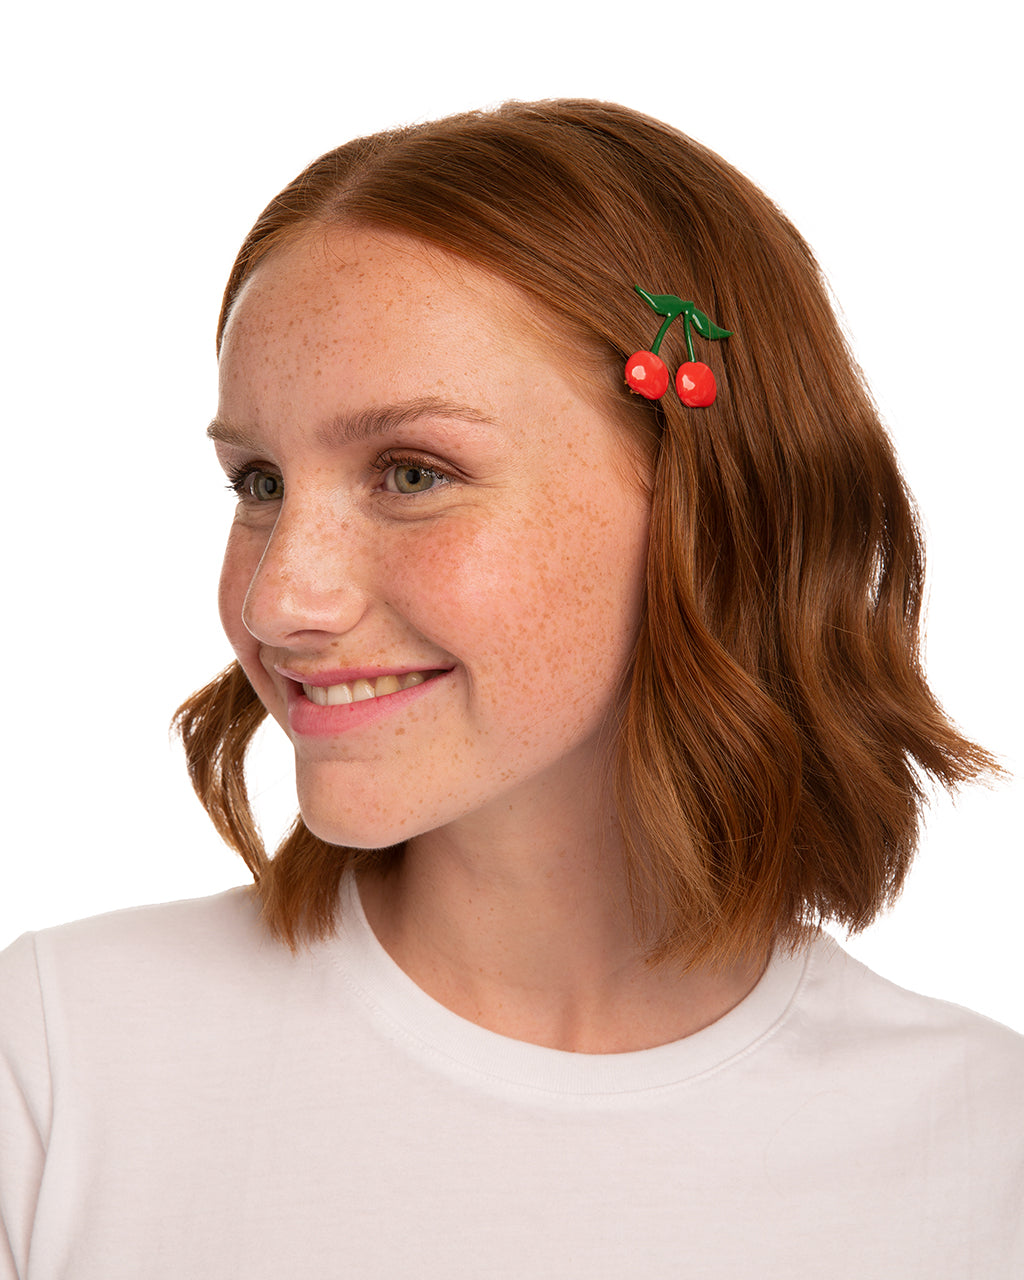 Red headed woman with a red & green cherry barrette above her ear.